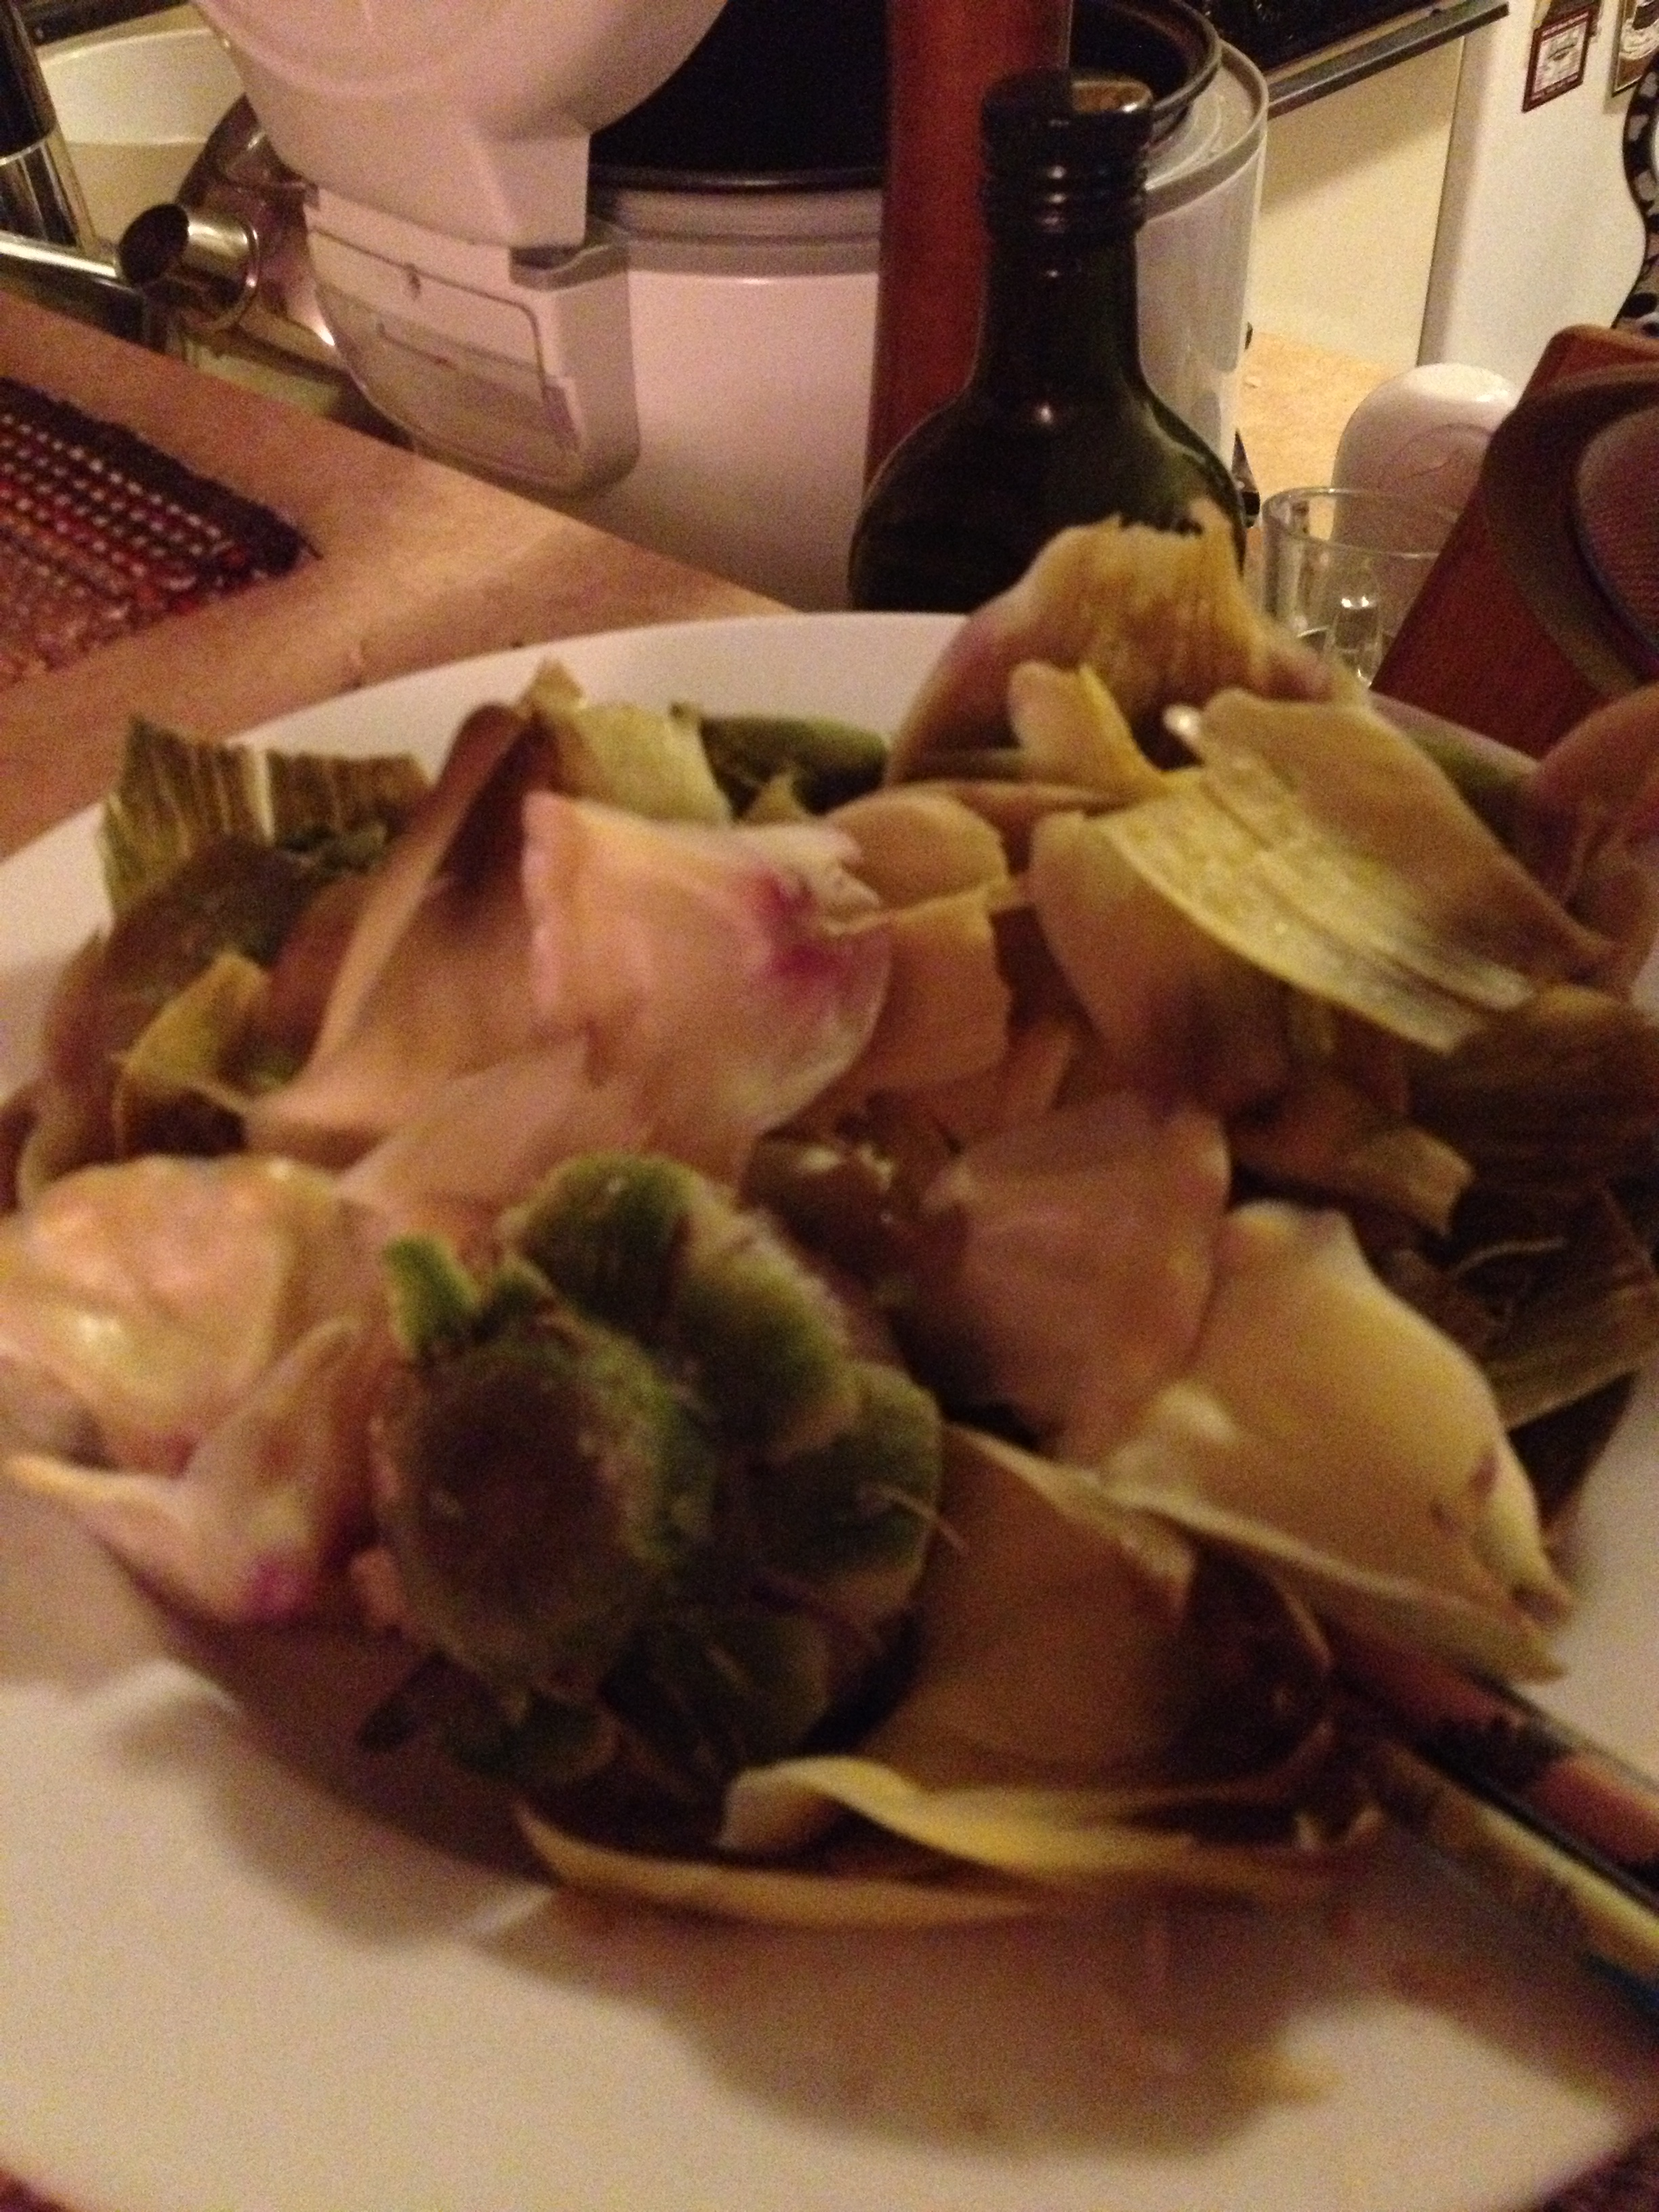 The remnants of my artichoke feast